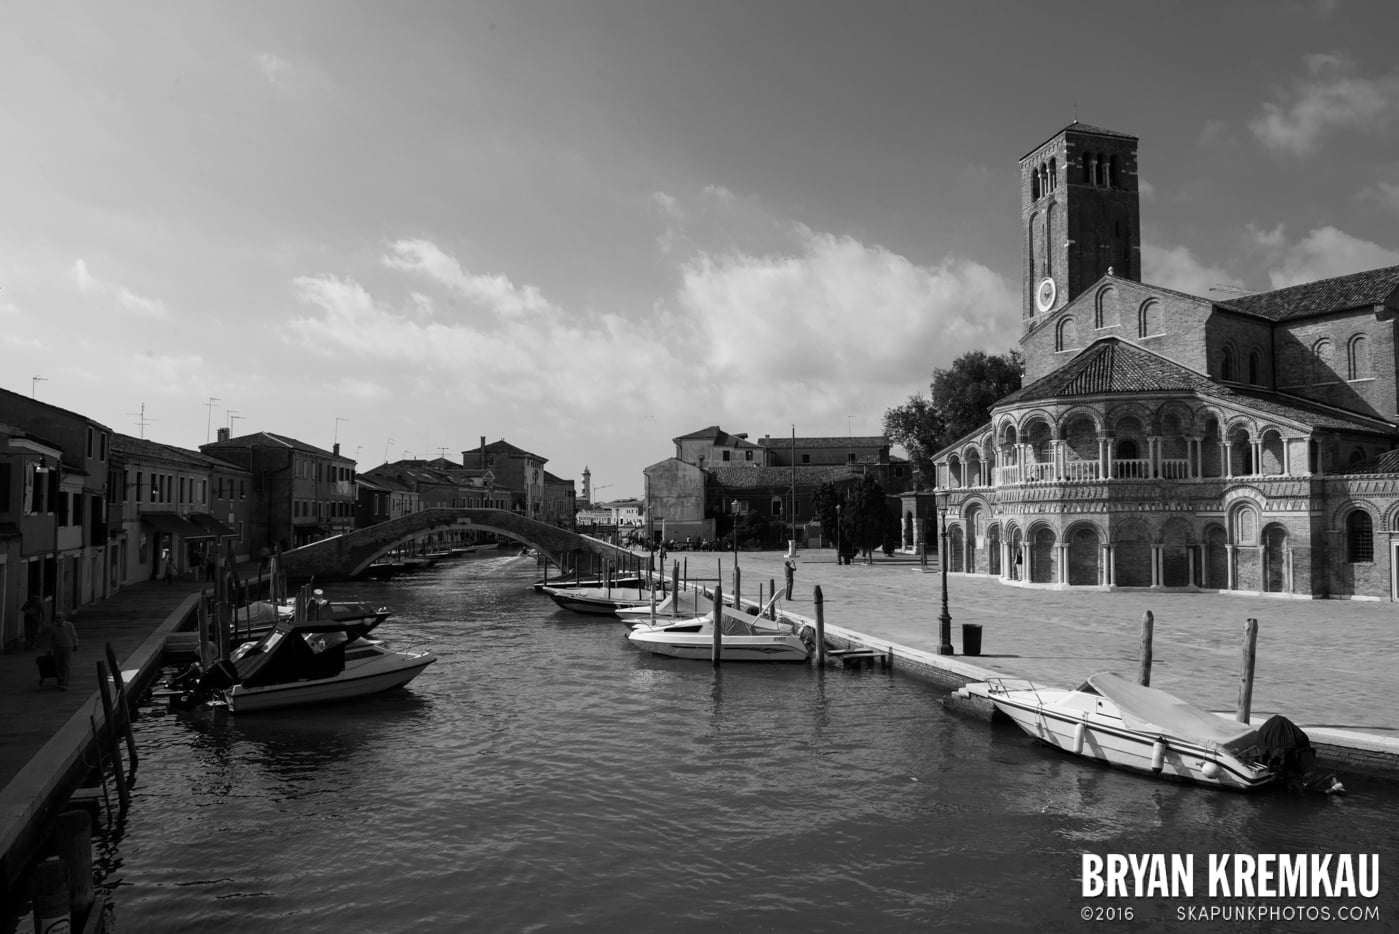 Italy Vacation - Day 6: Murano, Burano, Venice - 9.14.13 (80)